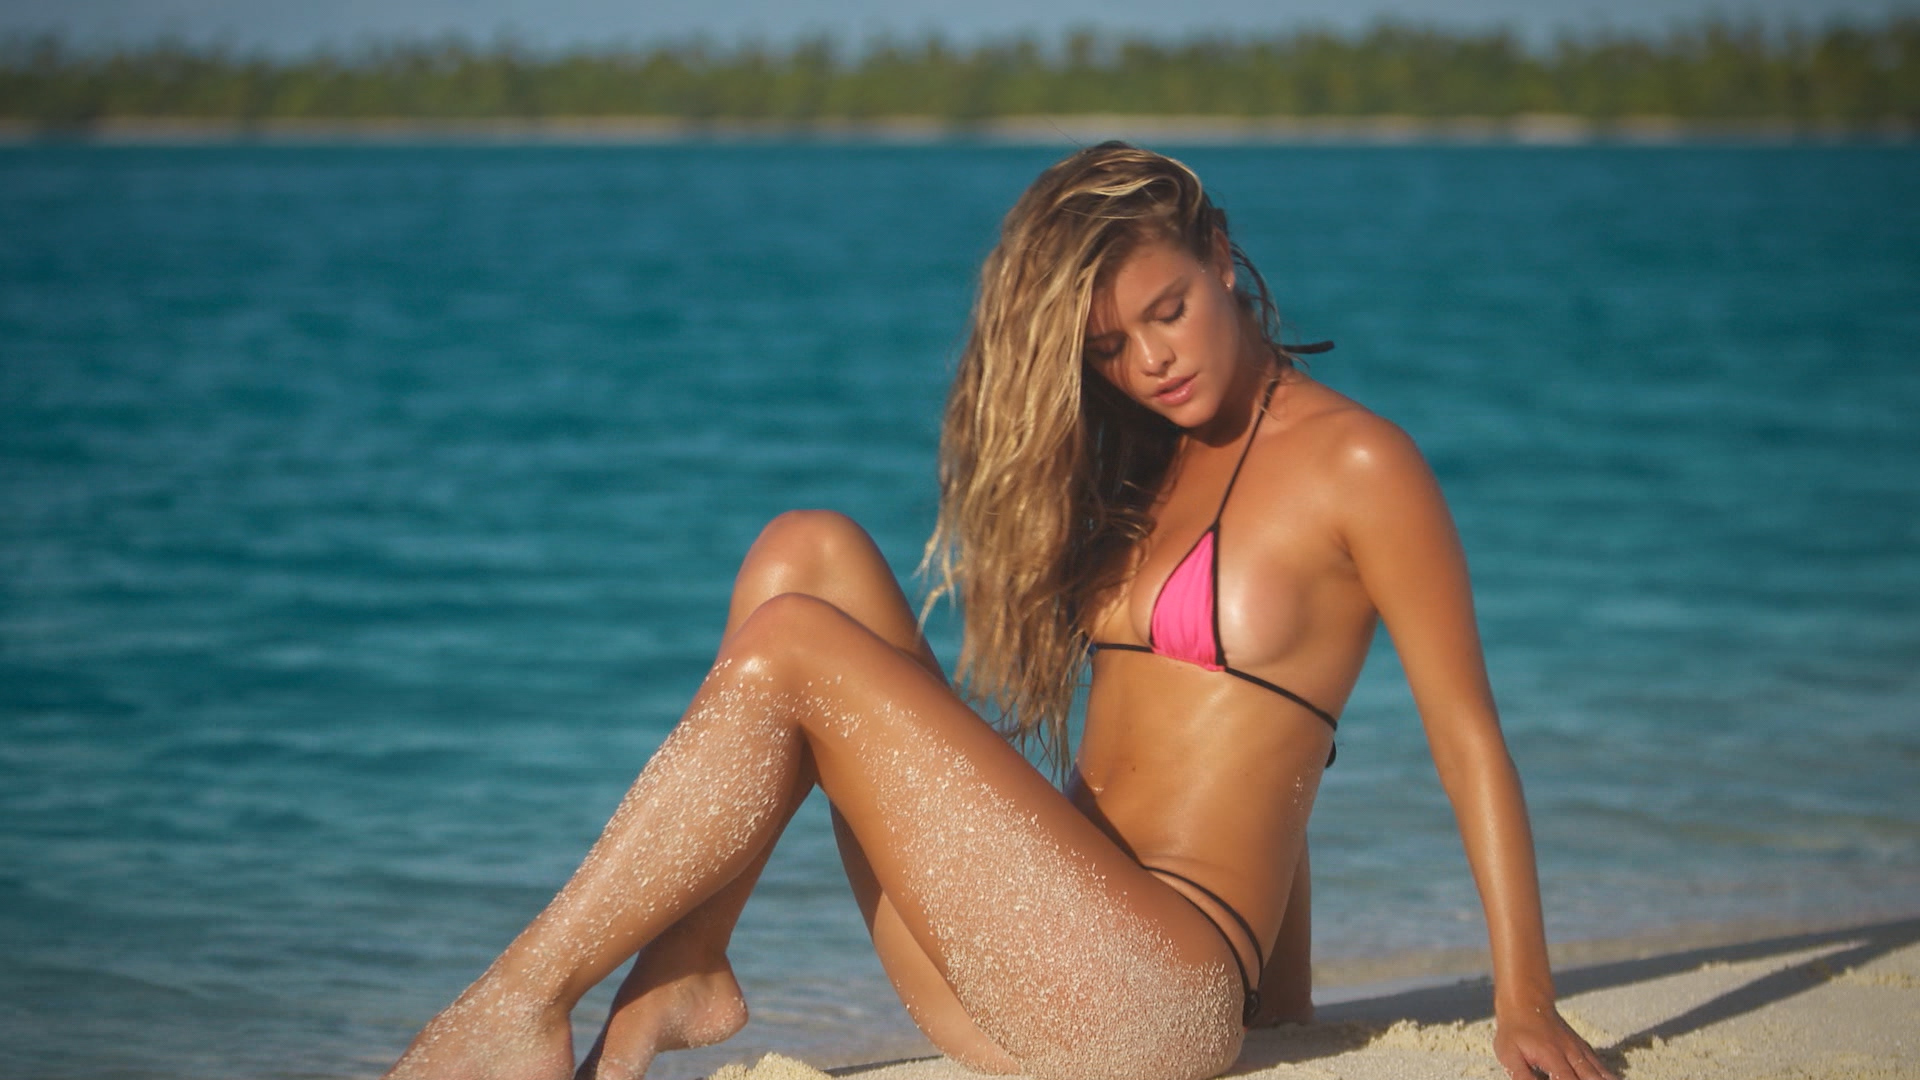 Swimsuit Unfiltered-Most Shocking Request